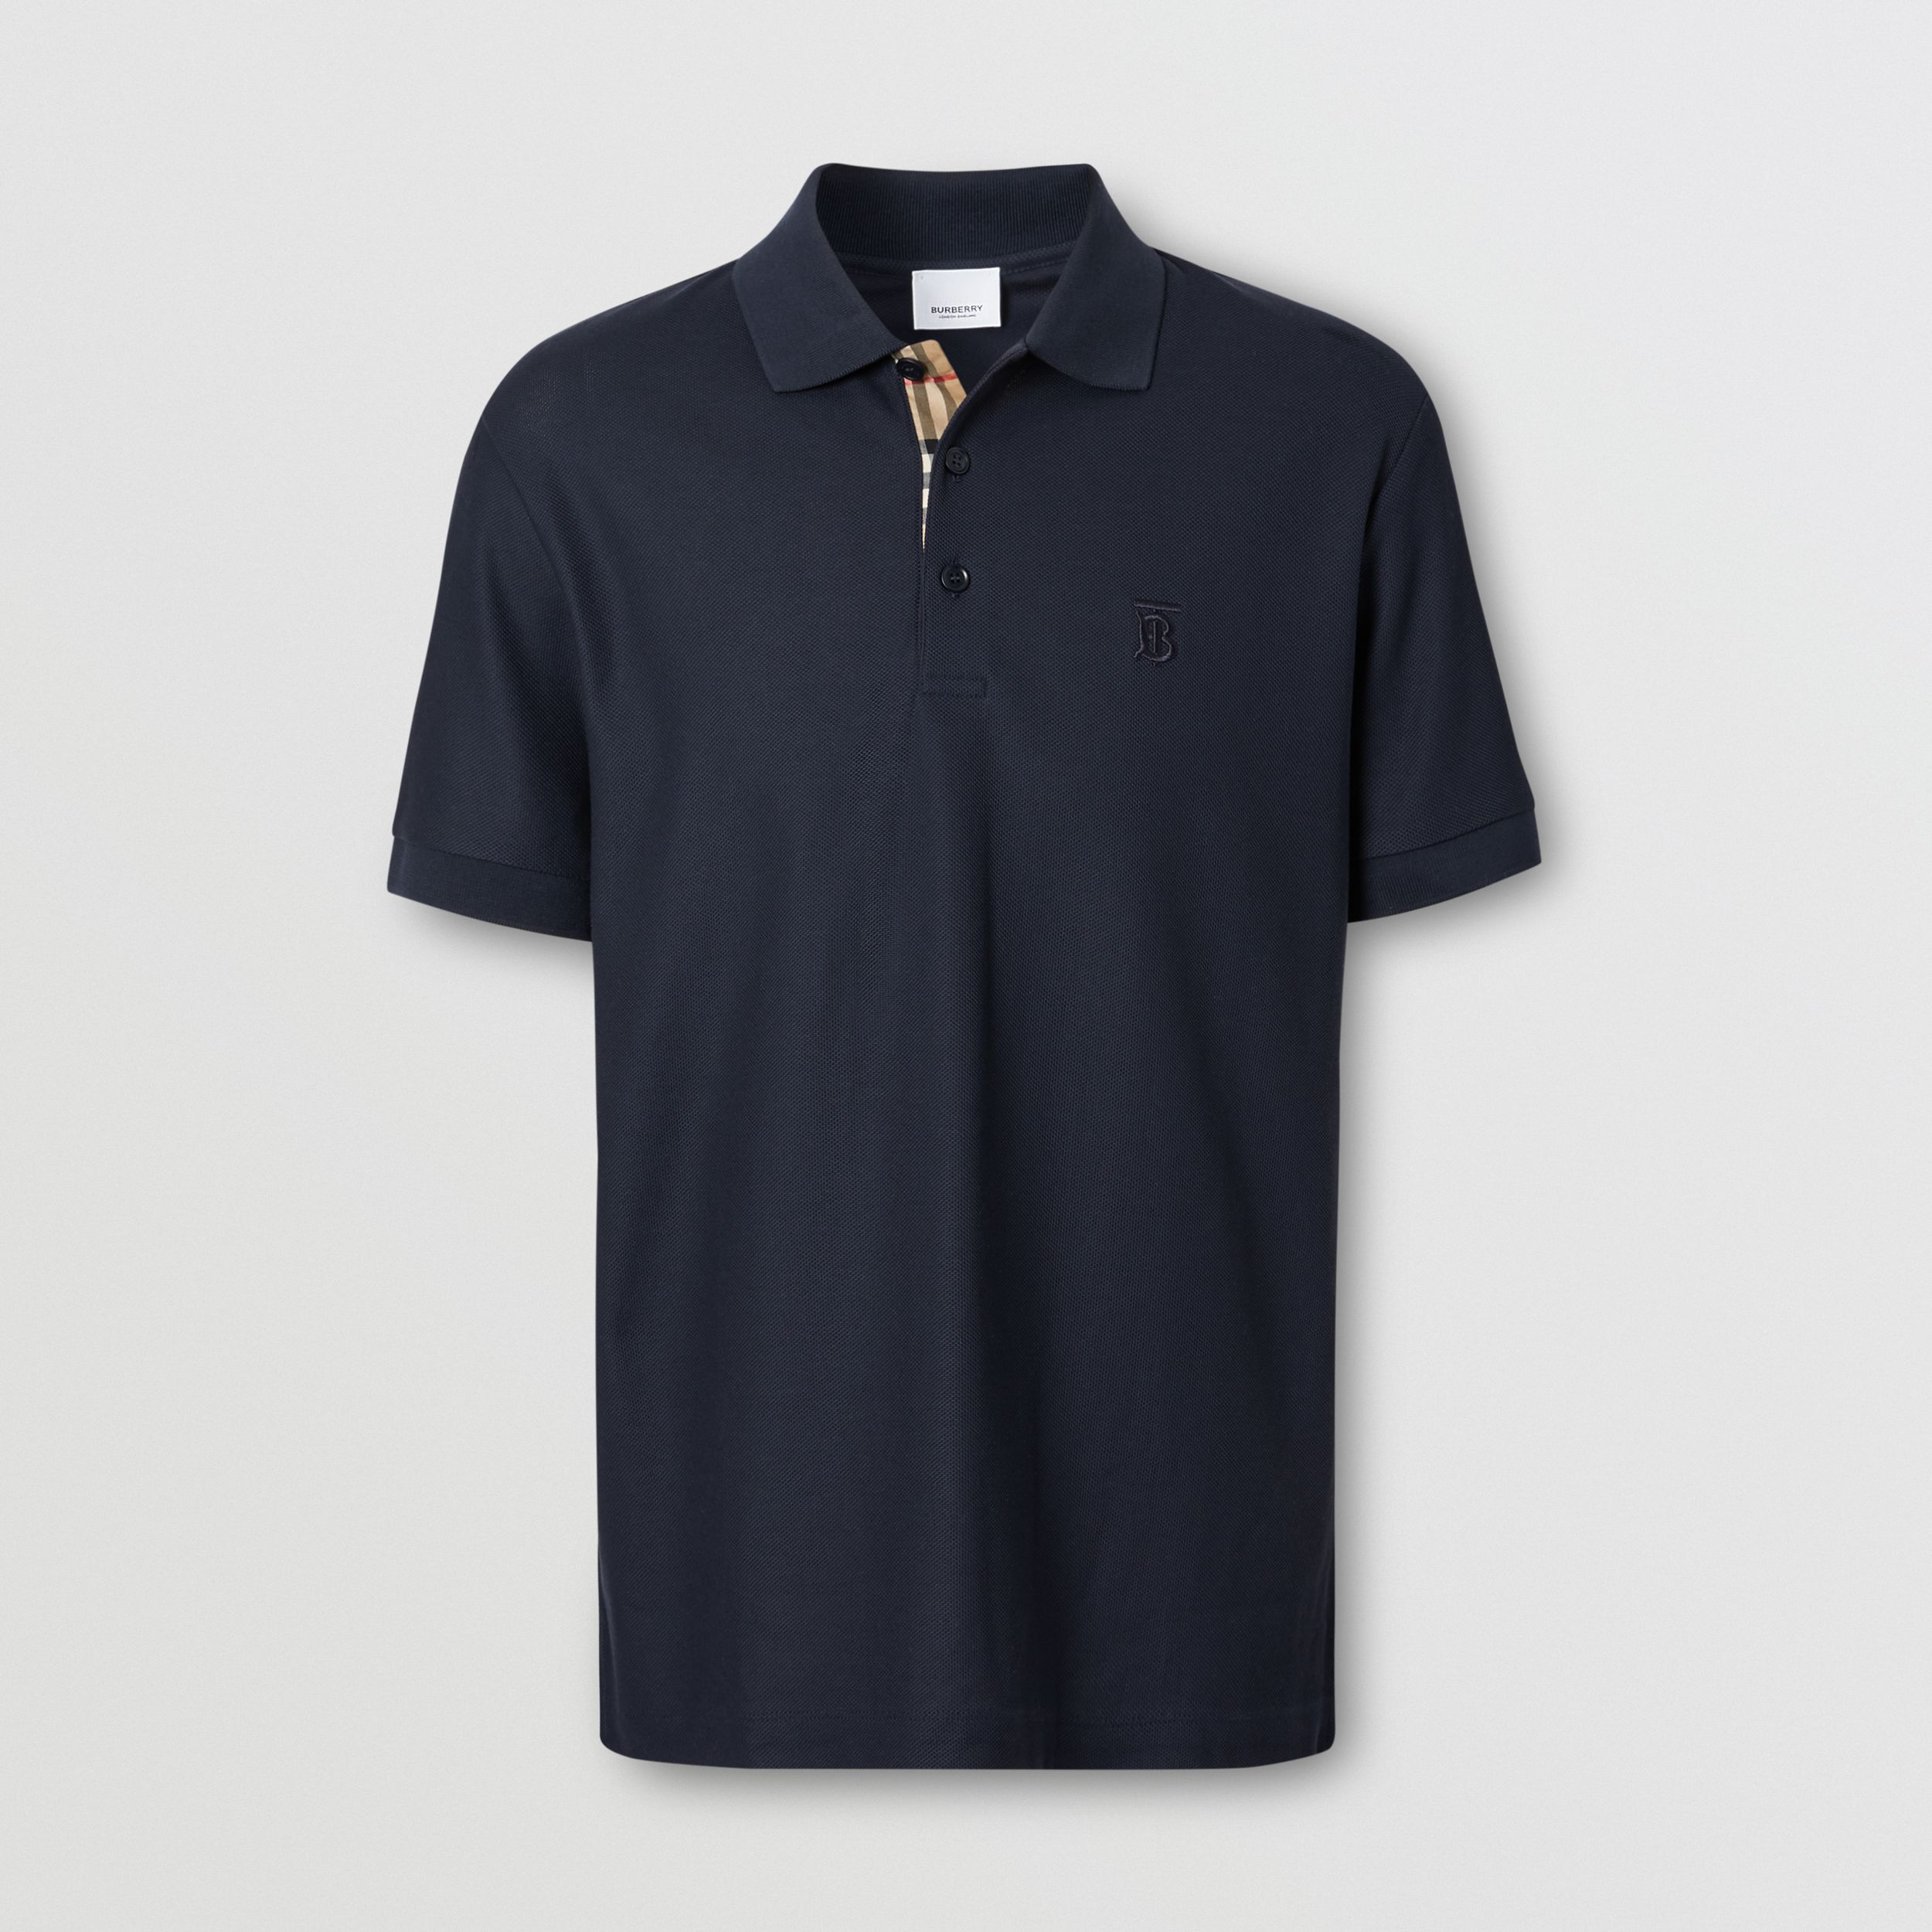 Monogram Motif Cotton Piqué Polo Shirt in Navy - Men | Burberry - 4